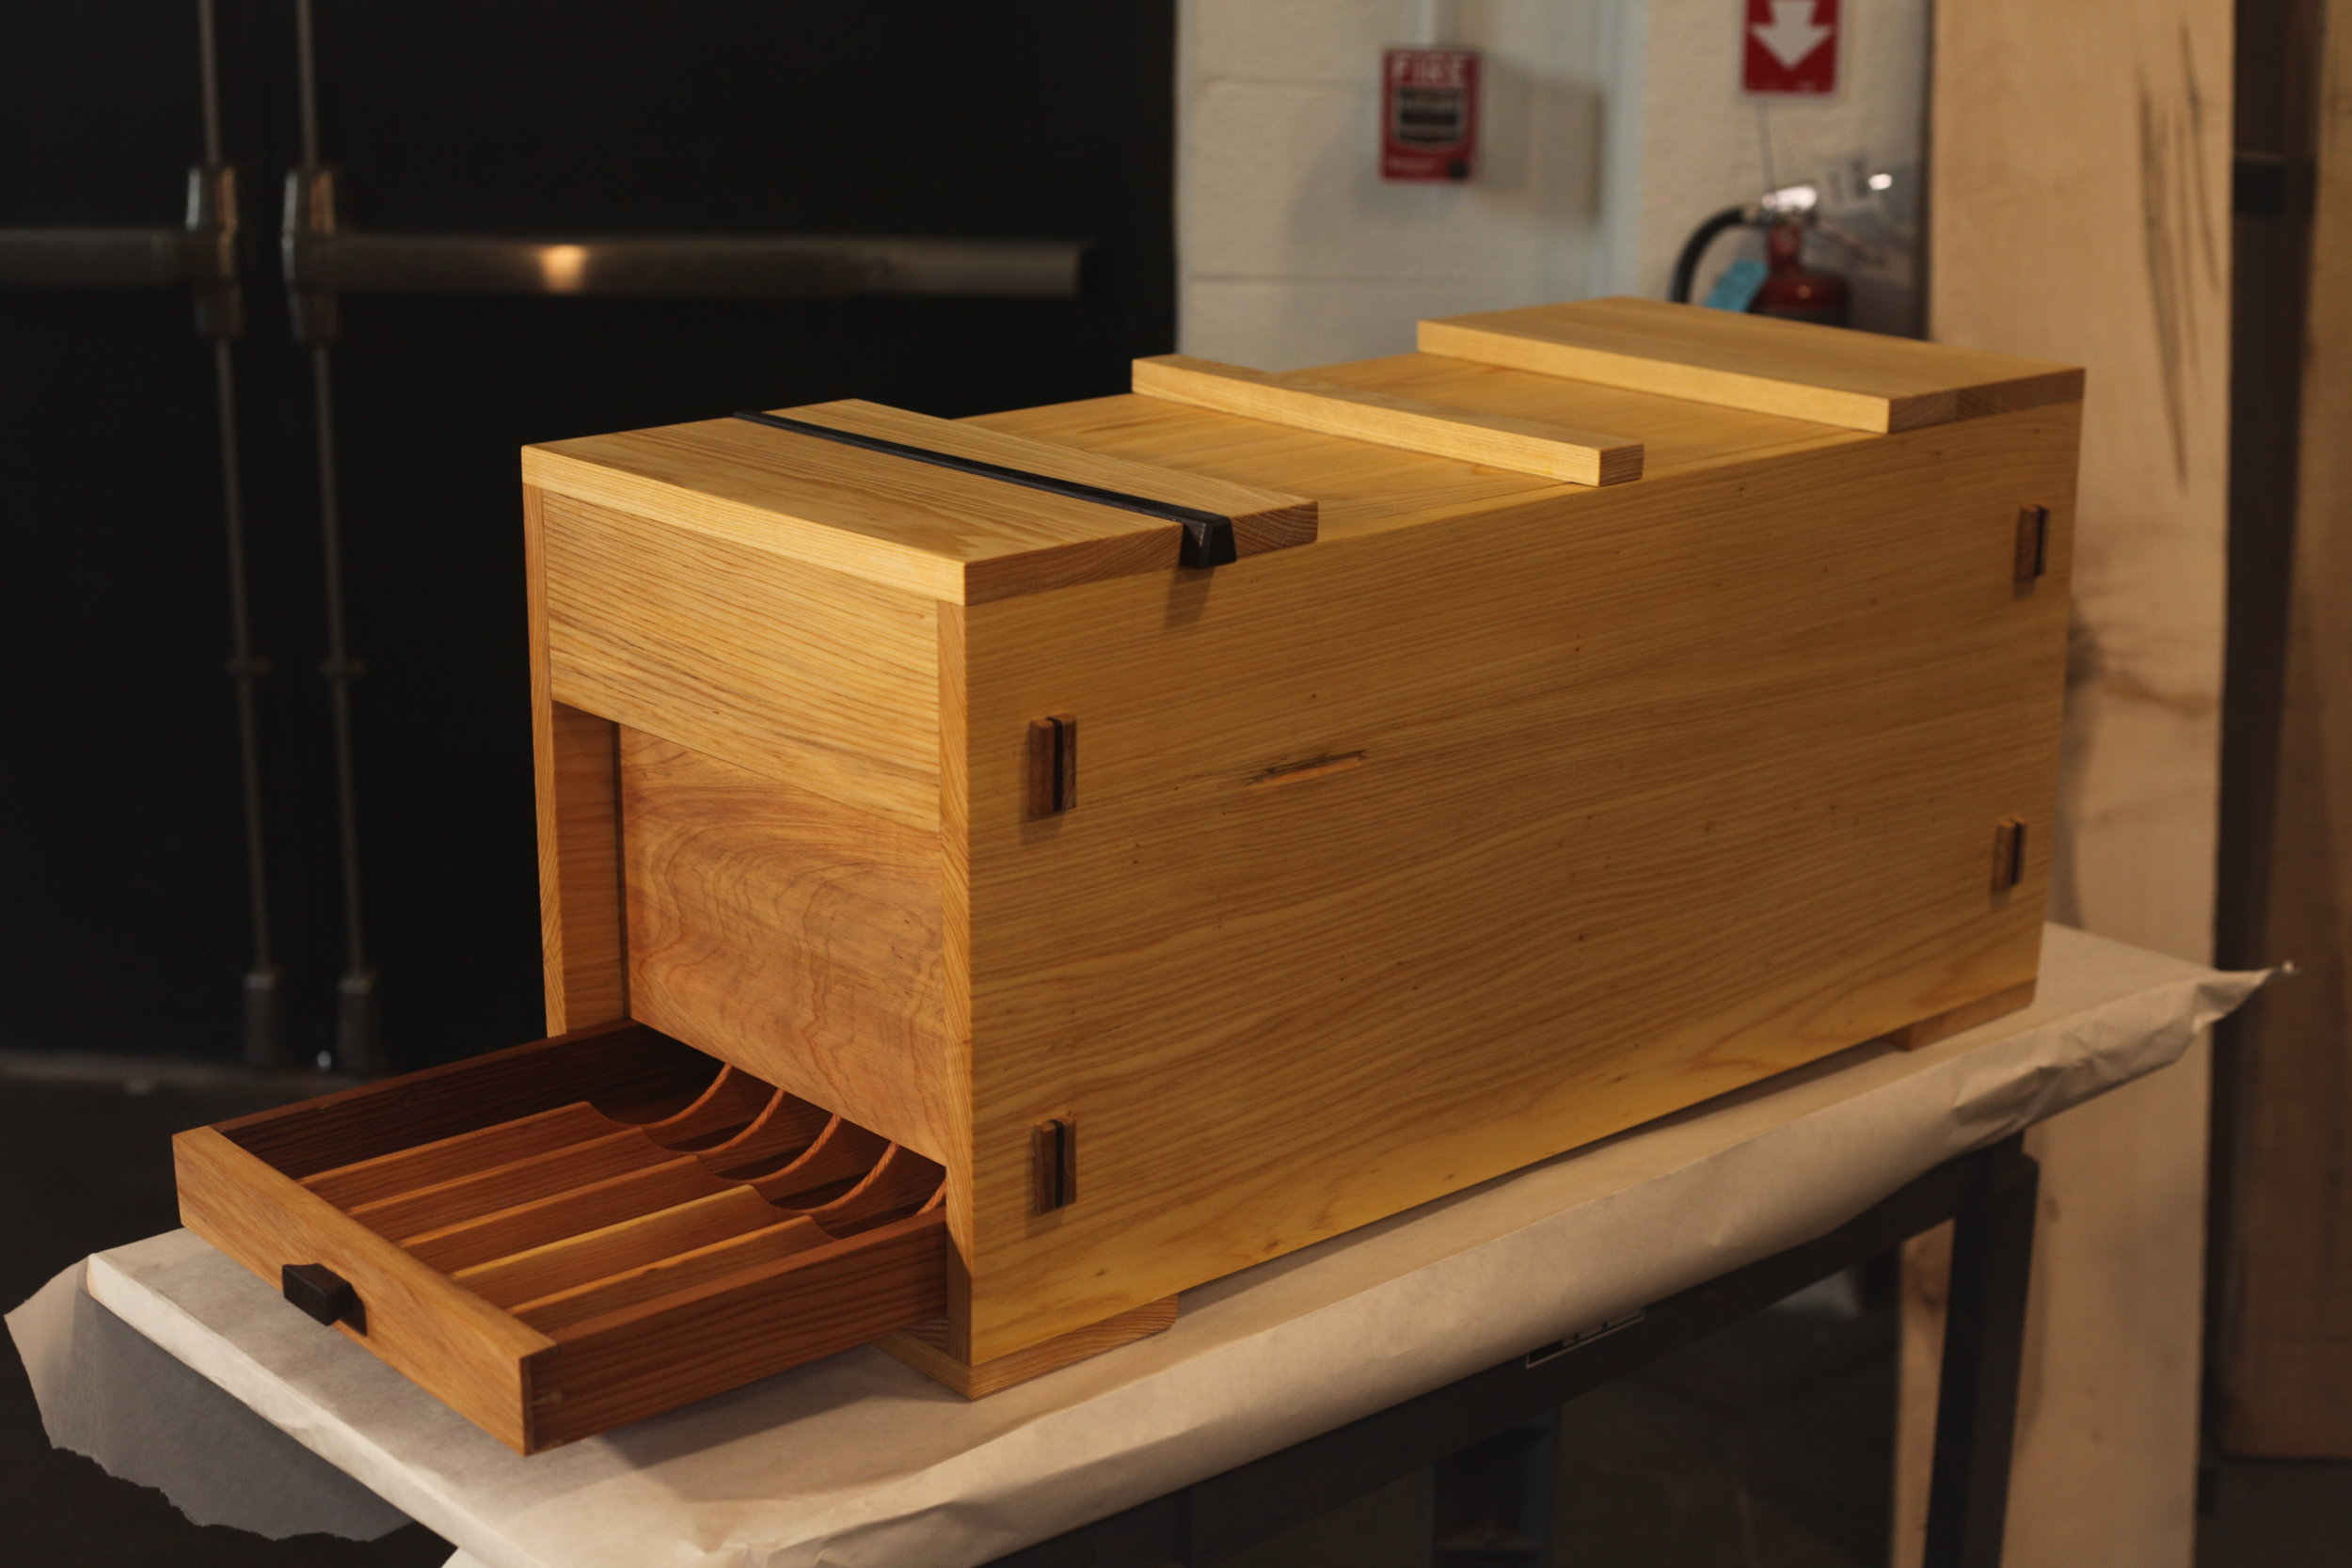 Japanese Toolbox Never Stop Building Crafting Wood